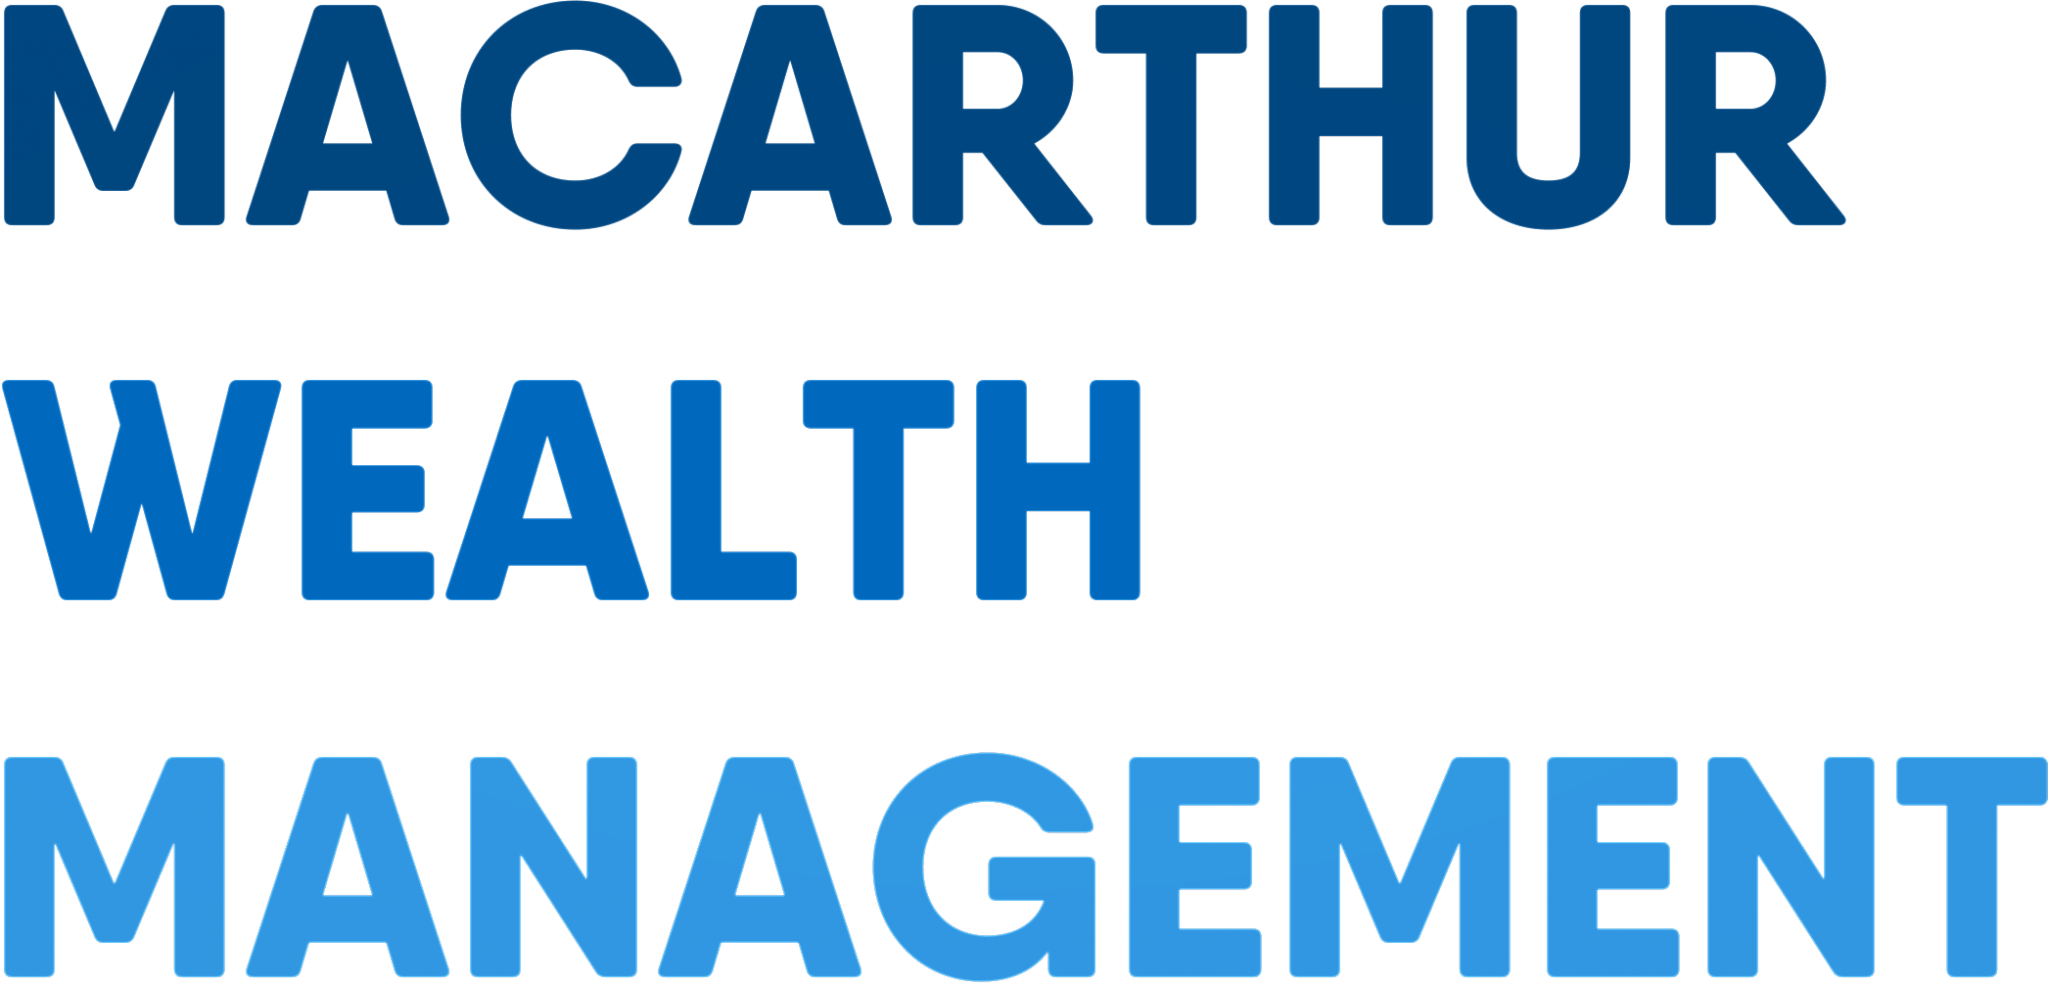 Macarthur Wealth Management